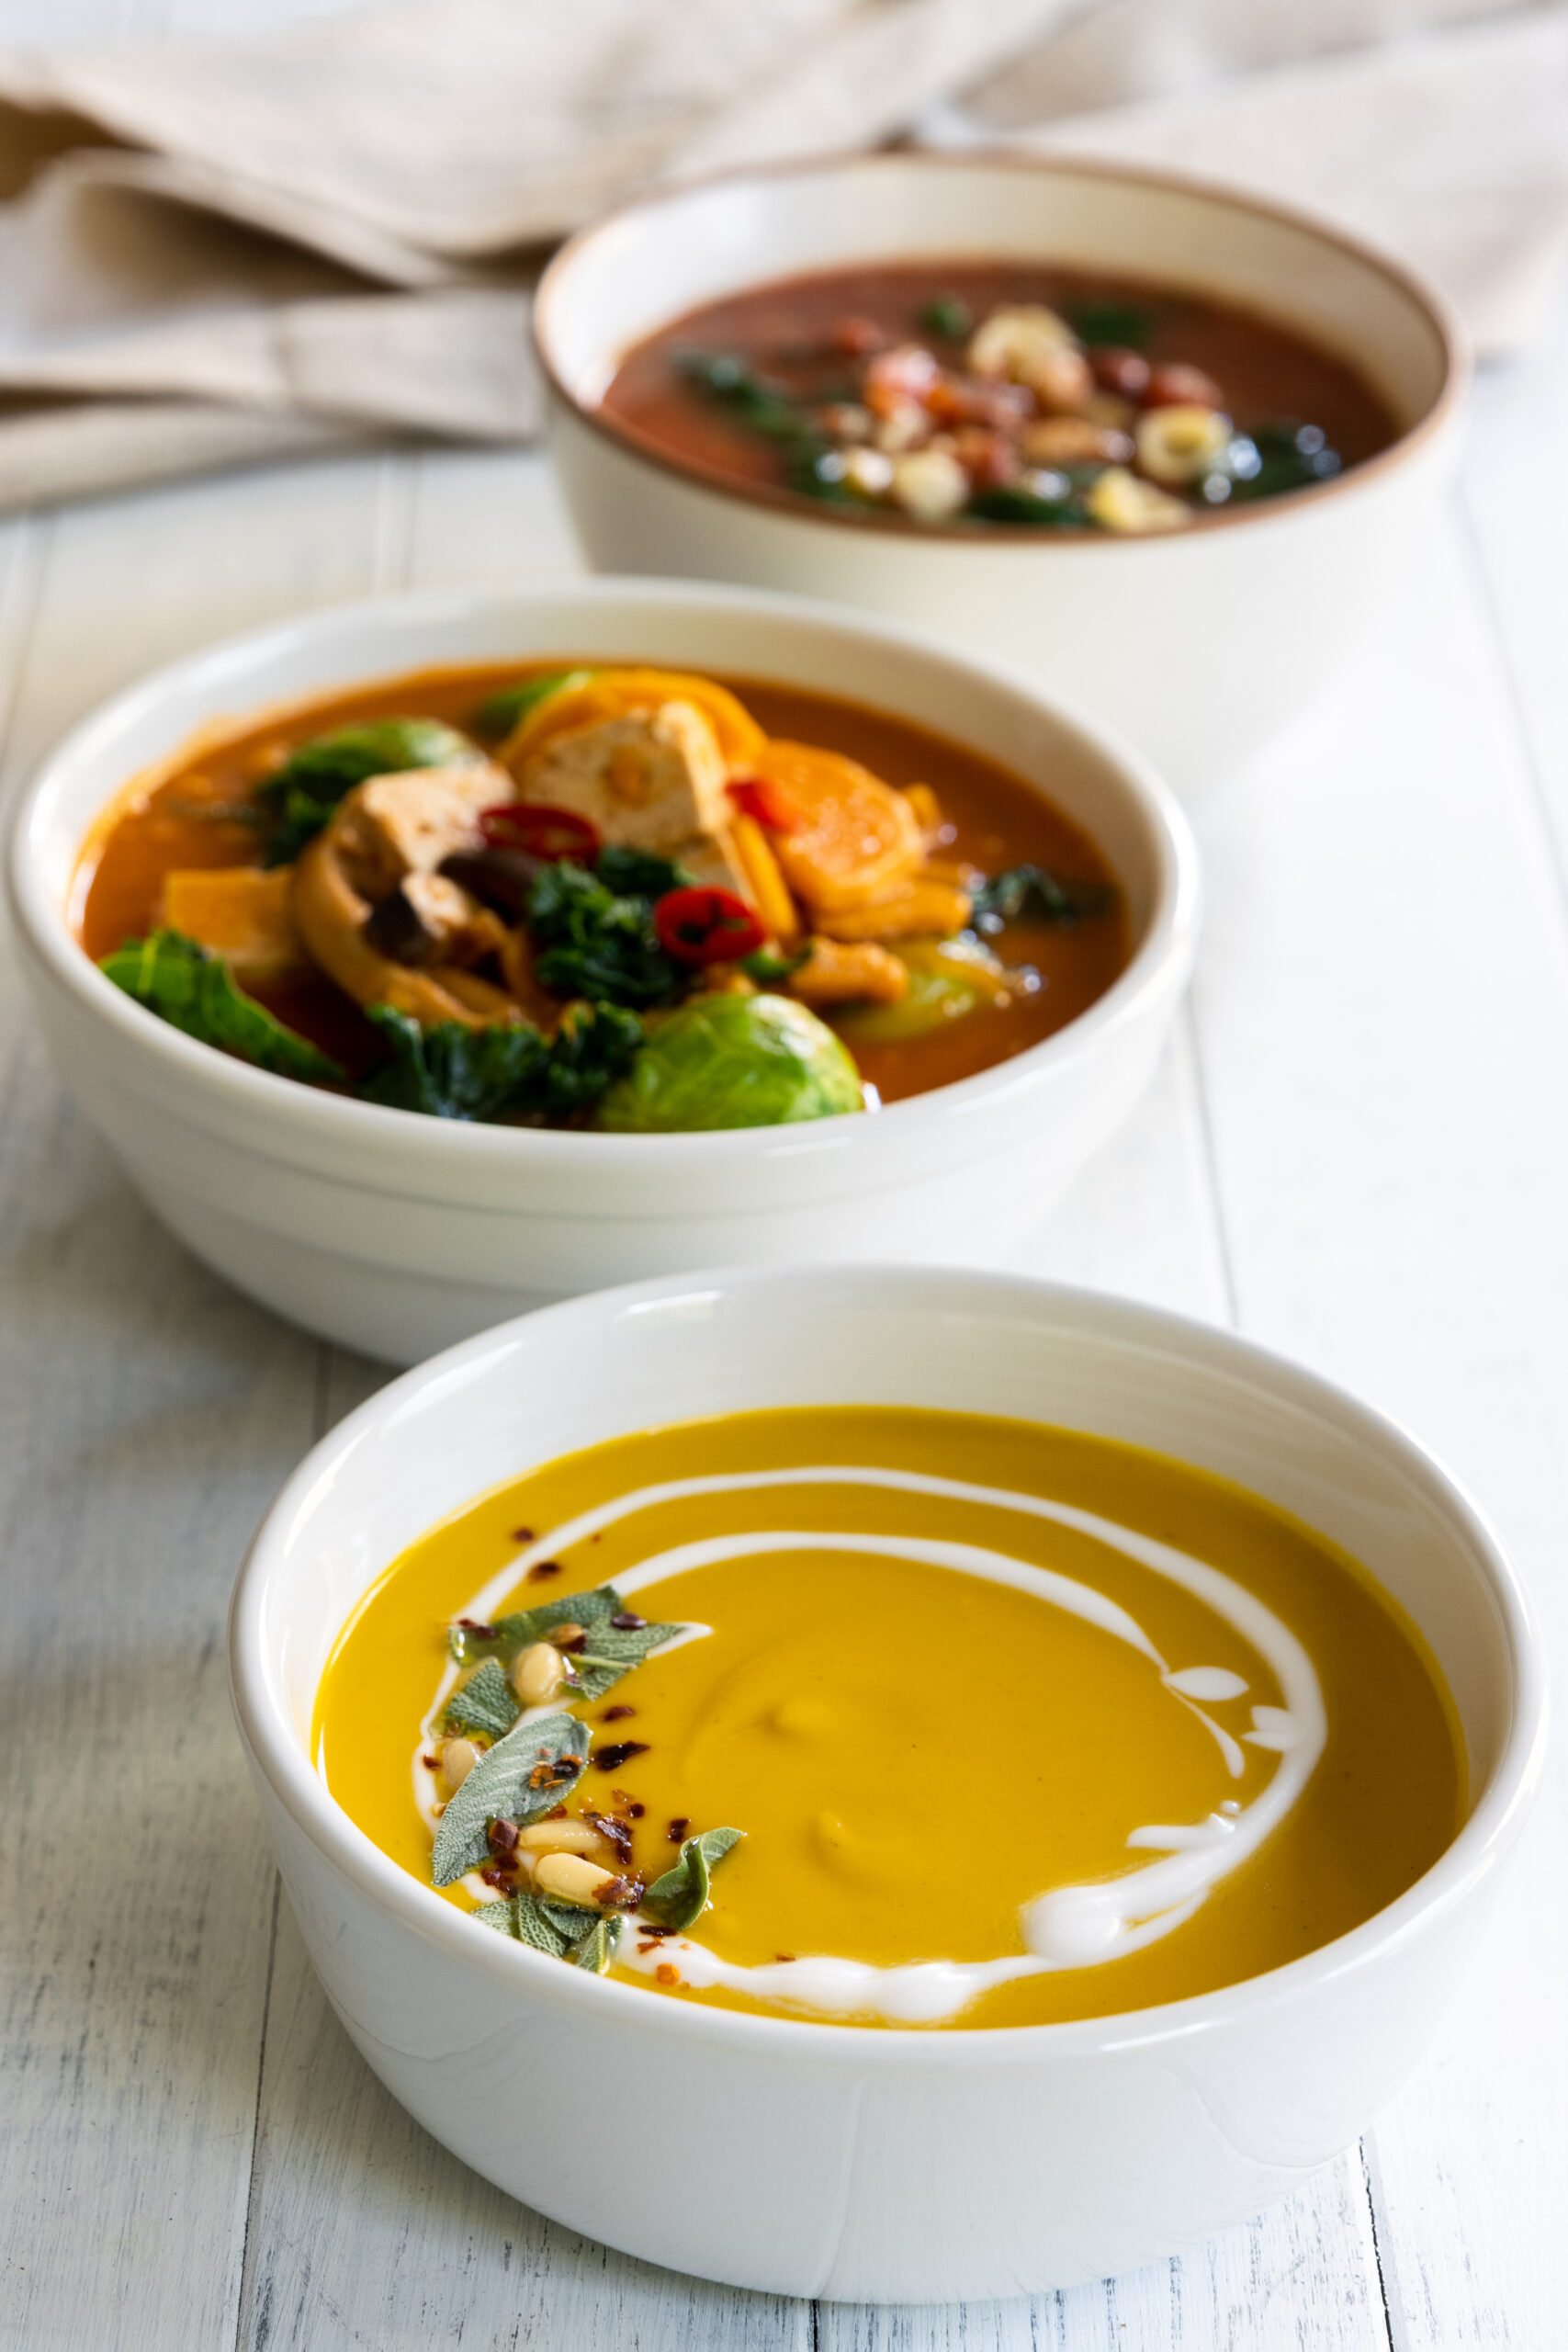 My Favorite Healthy Fall Soup Recipes